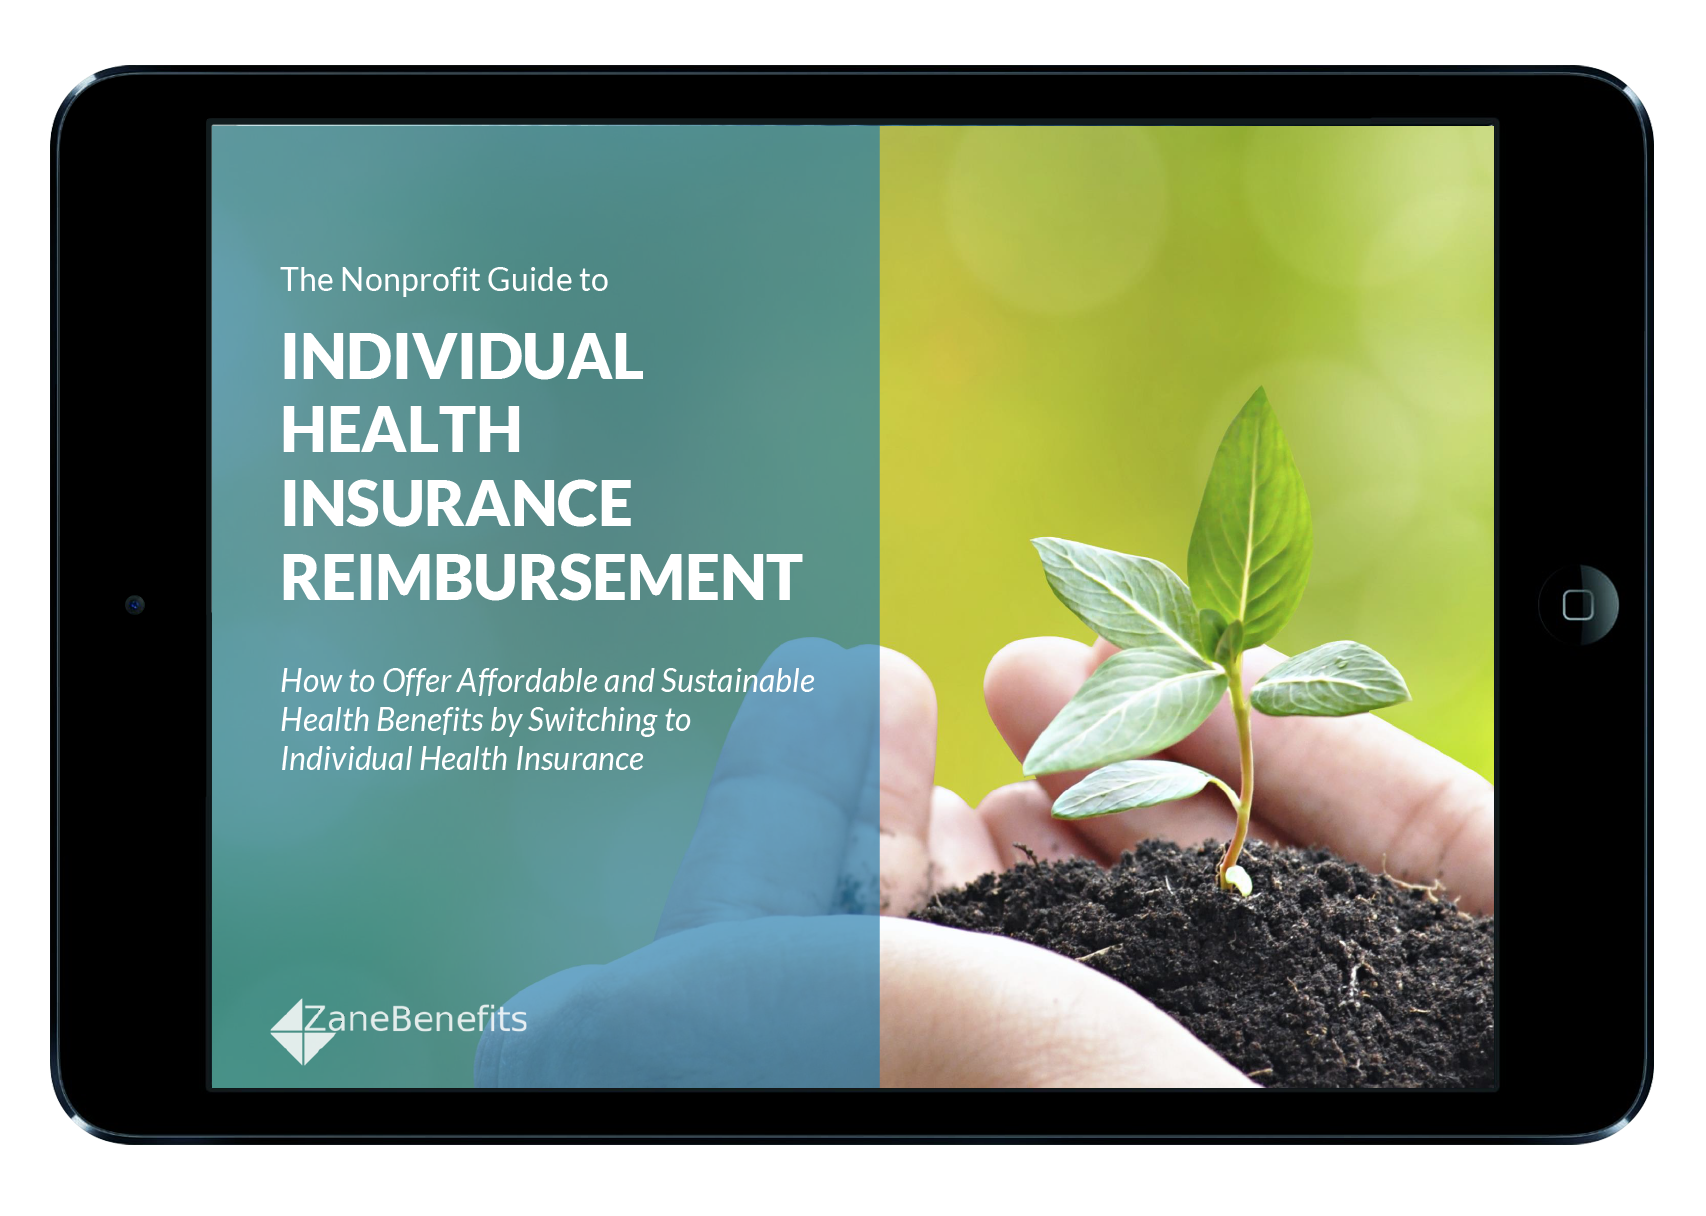 The Nonprofit Guide to Individual Health Insurance Reimbursement